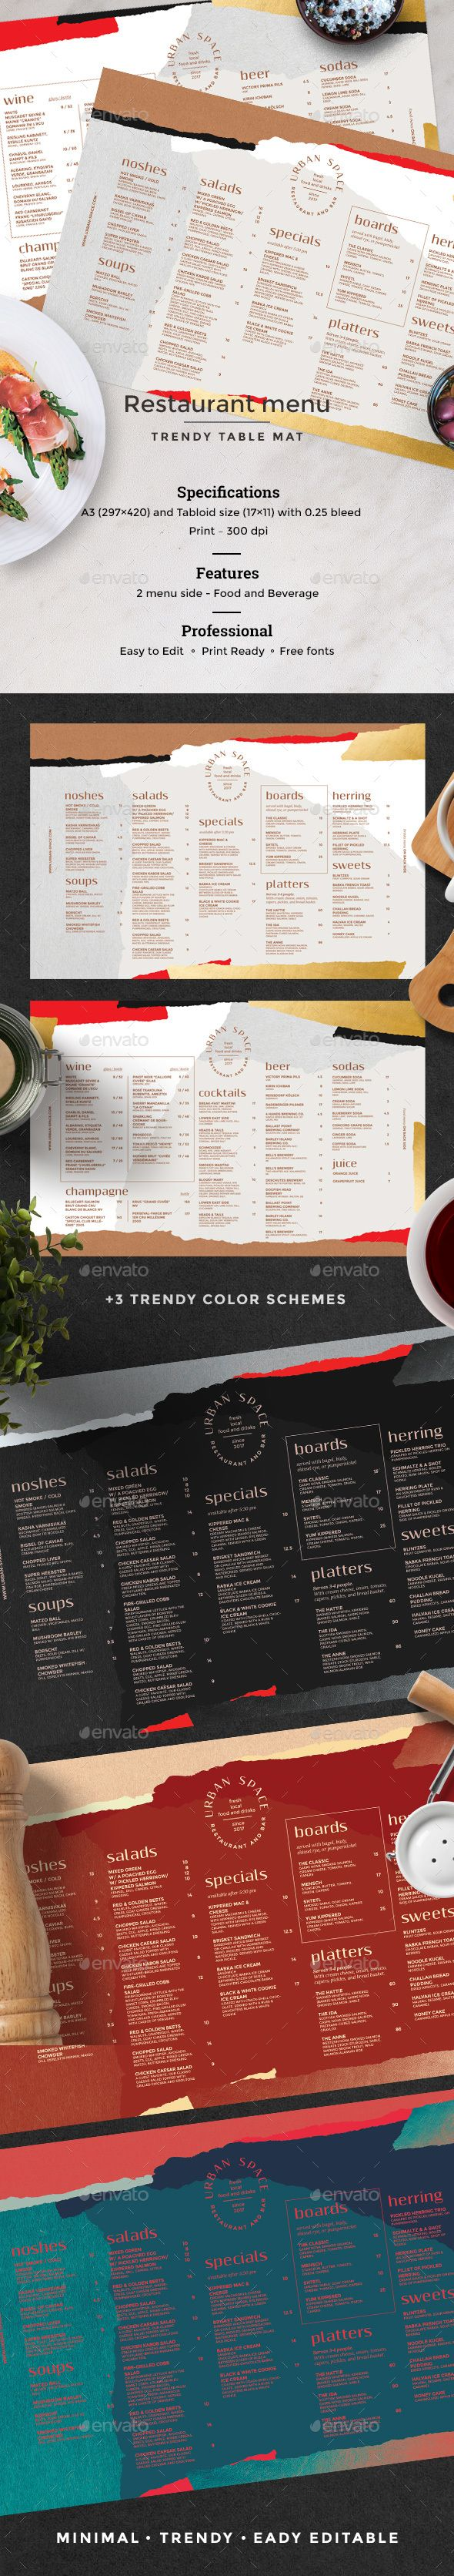 Restaurant Menu — Photoshop PSD #a3 #elegant • Available here ➝ https://graphicriver.net/item/restaurant-menu/20836254?ref=pxcr